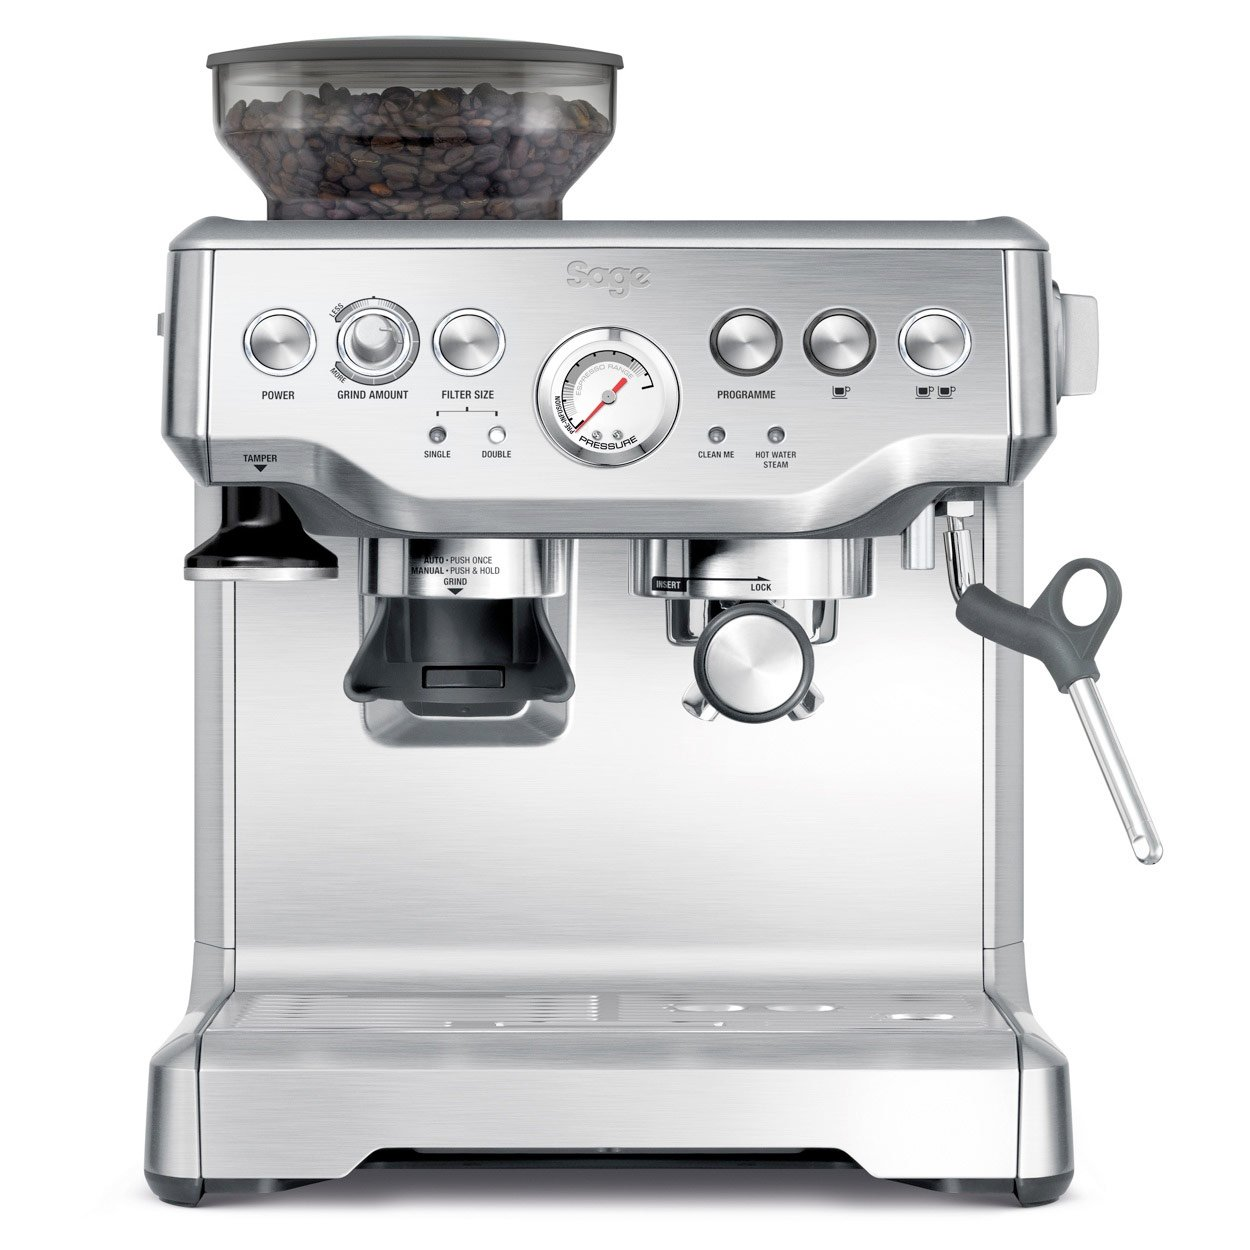 The Barista Express is arguably the best bean to cup coffee machine out on the market right now.